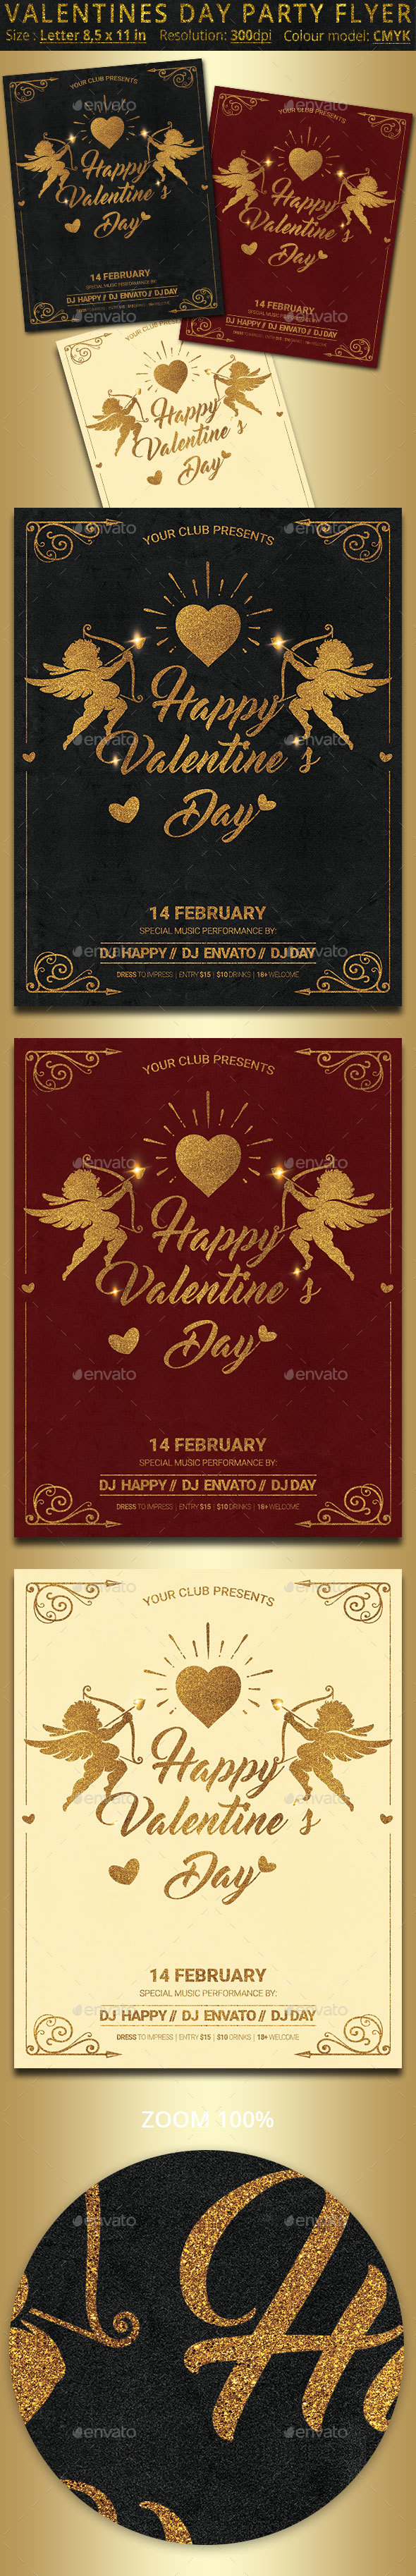 Valentines Day Party Flyer Poster - Clubs & Parties Events